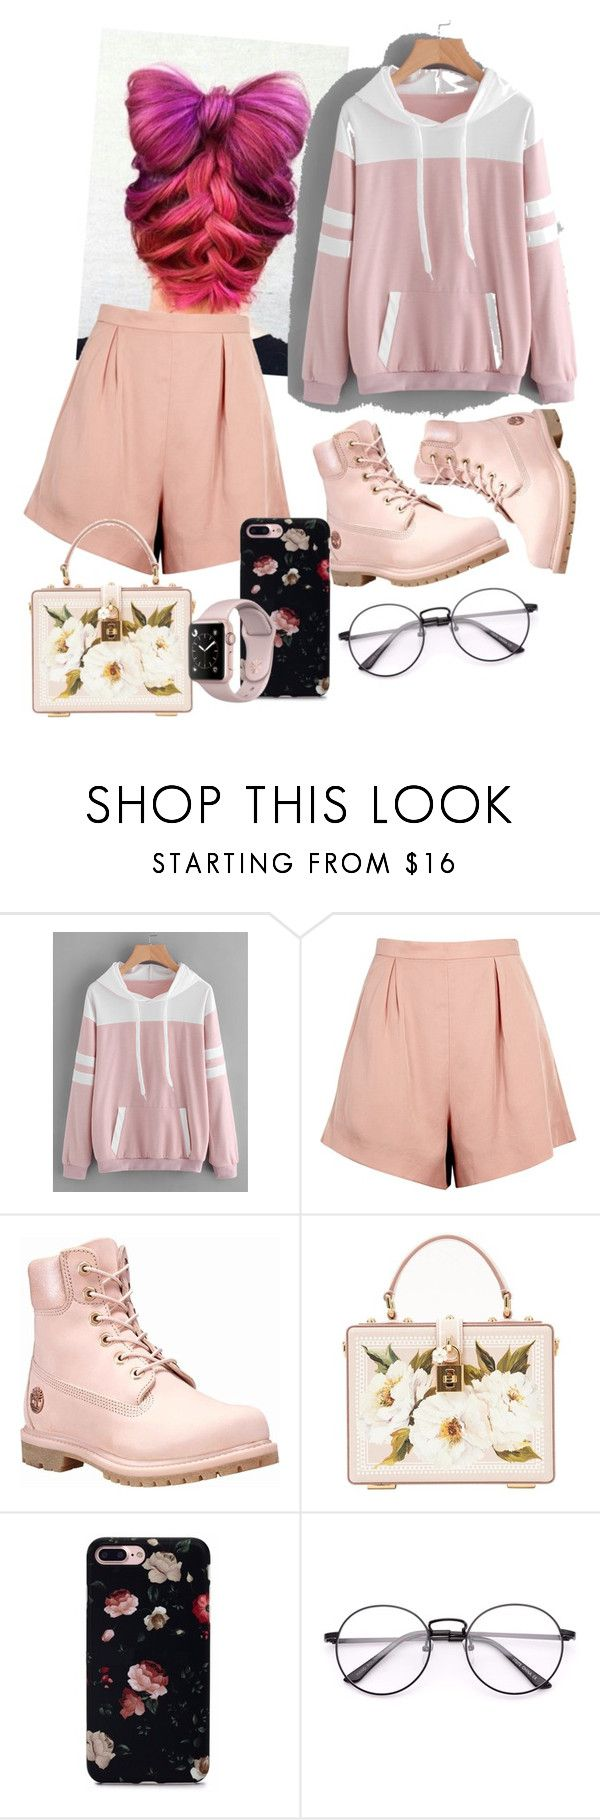 """""""pink over"""" by queenofquestions ❤ liked on Polyvore featuring Finders Keepers, Timberland and Dolce&Gabbana"""